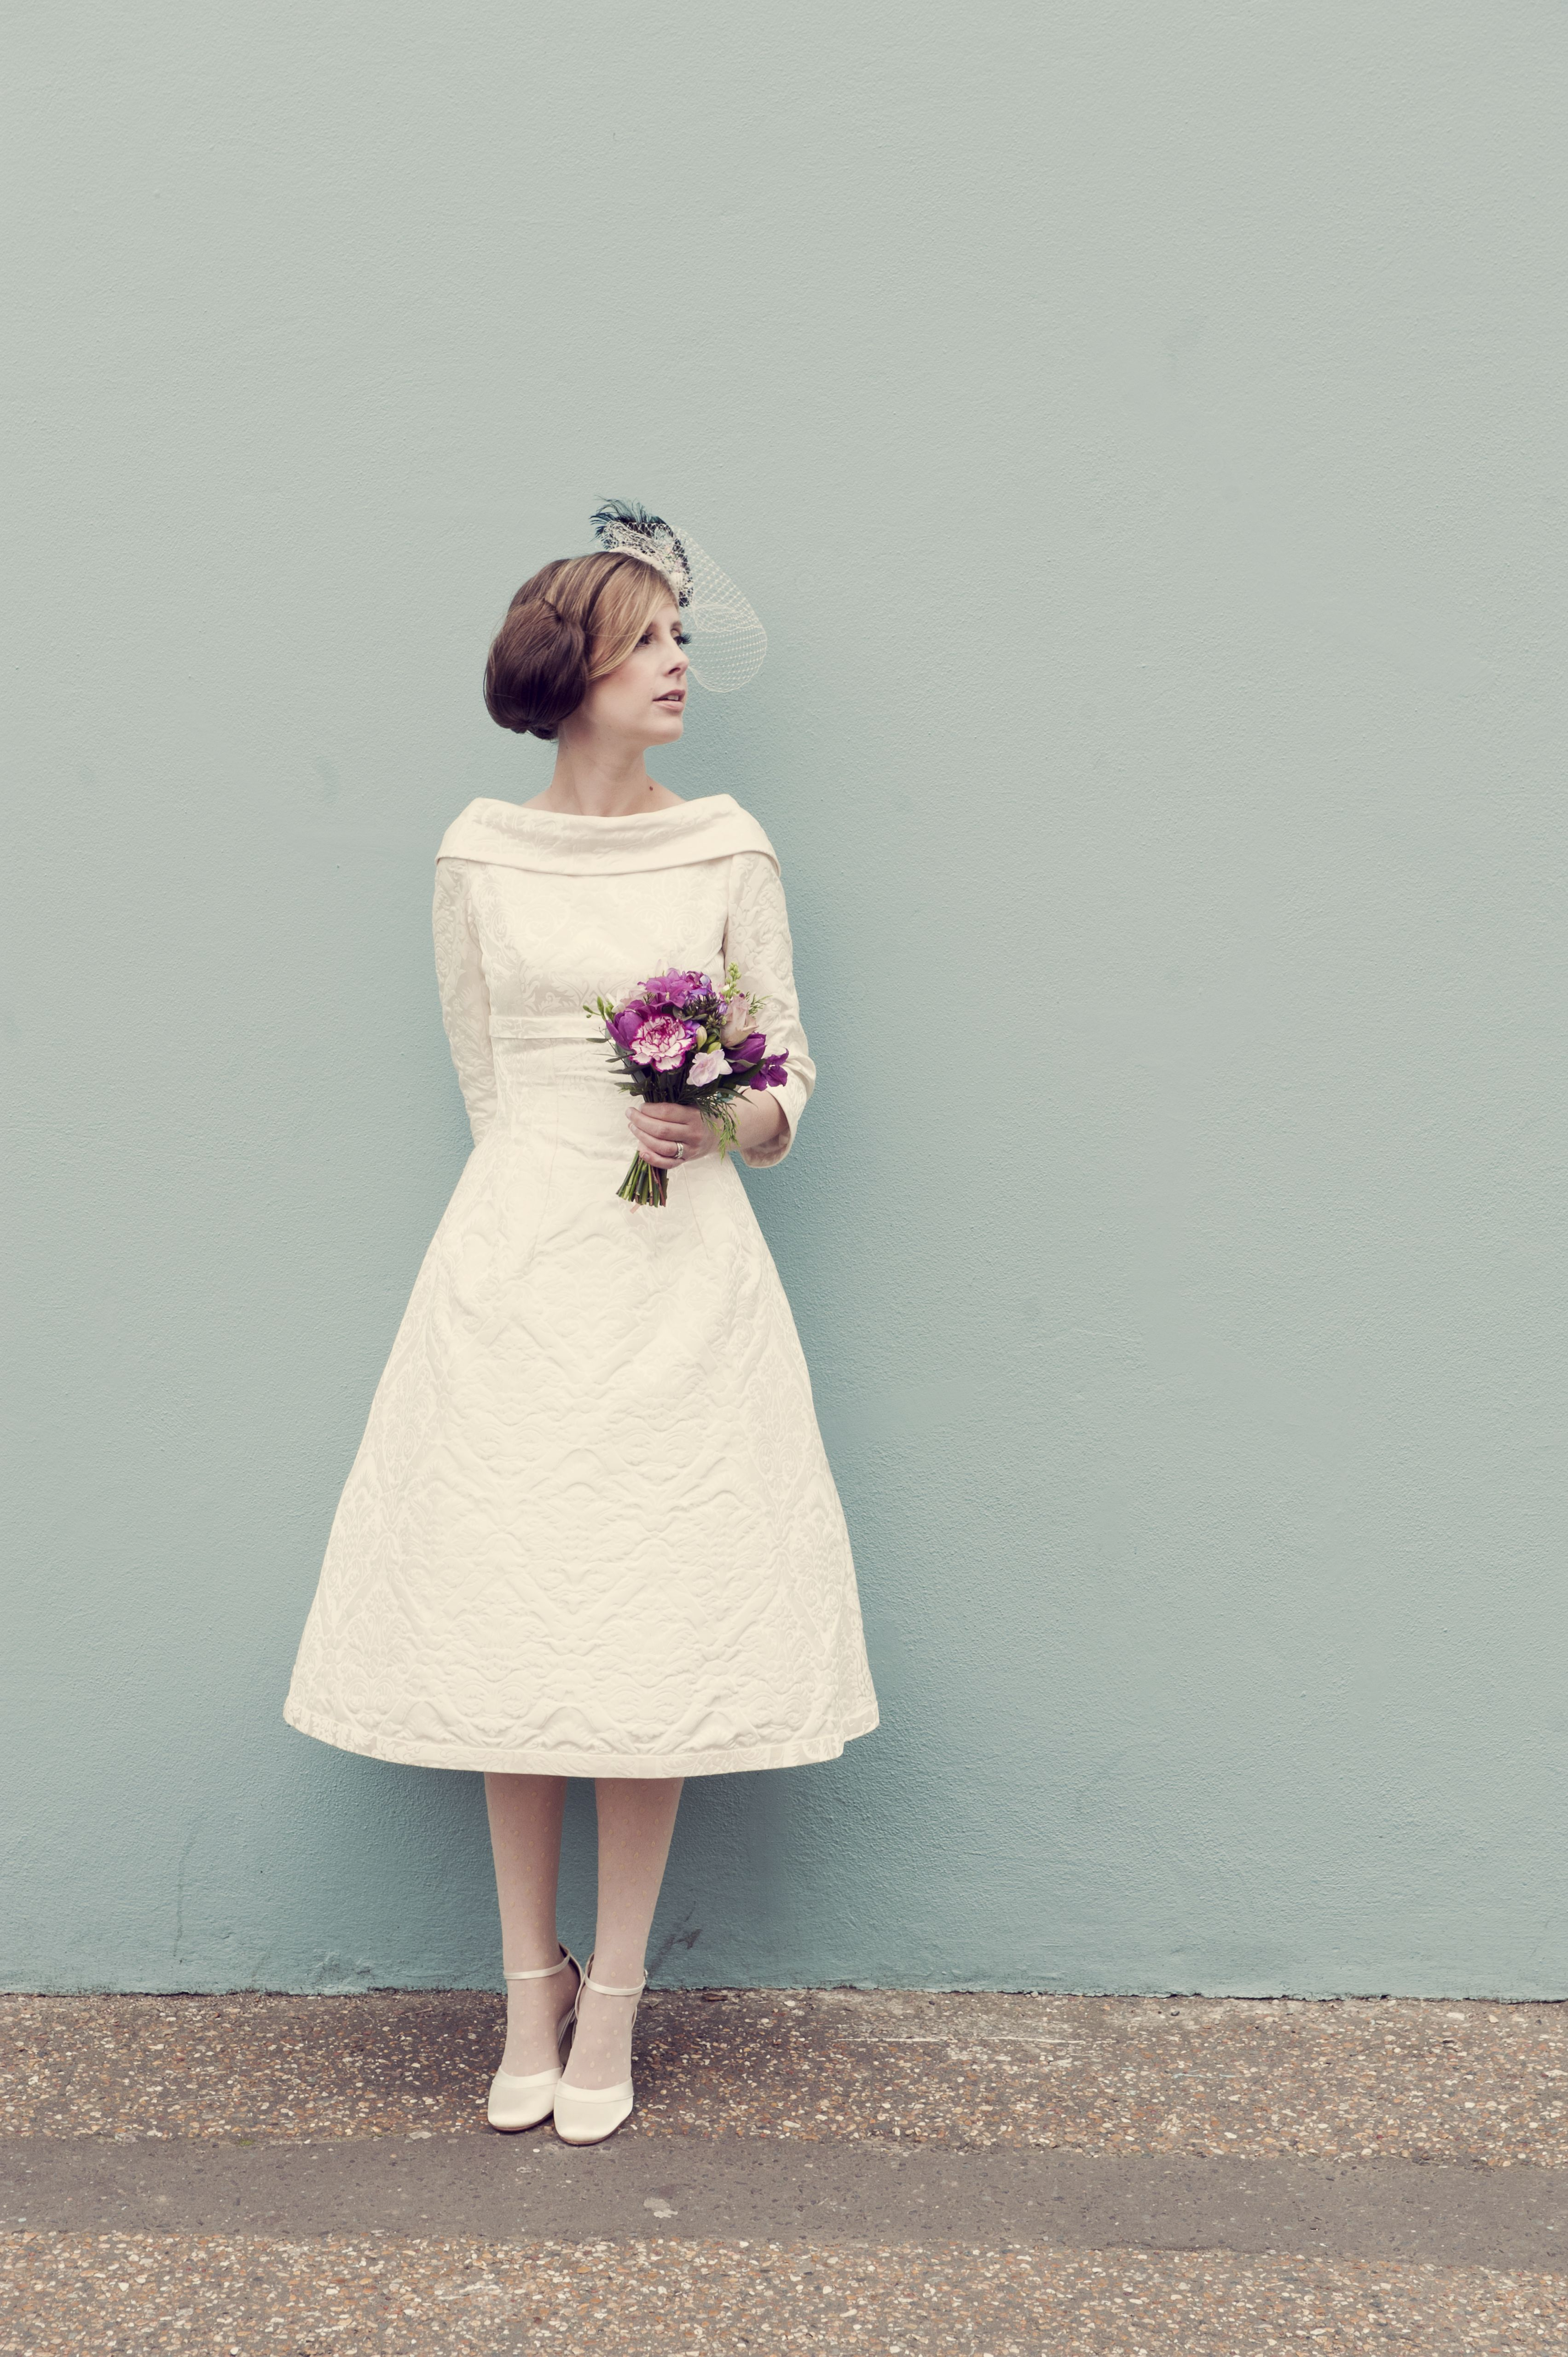 Sussex Based Vintage Style Photographer Quirky Fun Wedding Bride Posie Country Flowers Bouq 1960s Wedding Dresses Short Bride Dresses Amazing Wedding Dress [ 5120 x 3407 Pixel ]